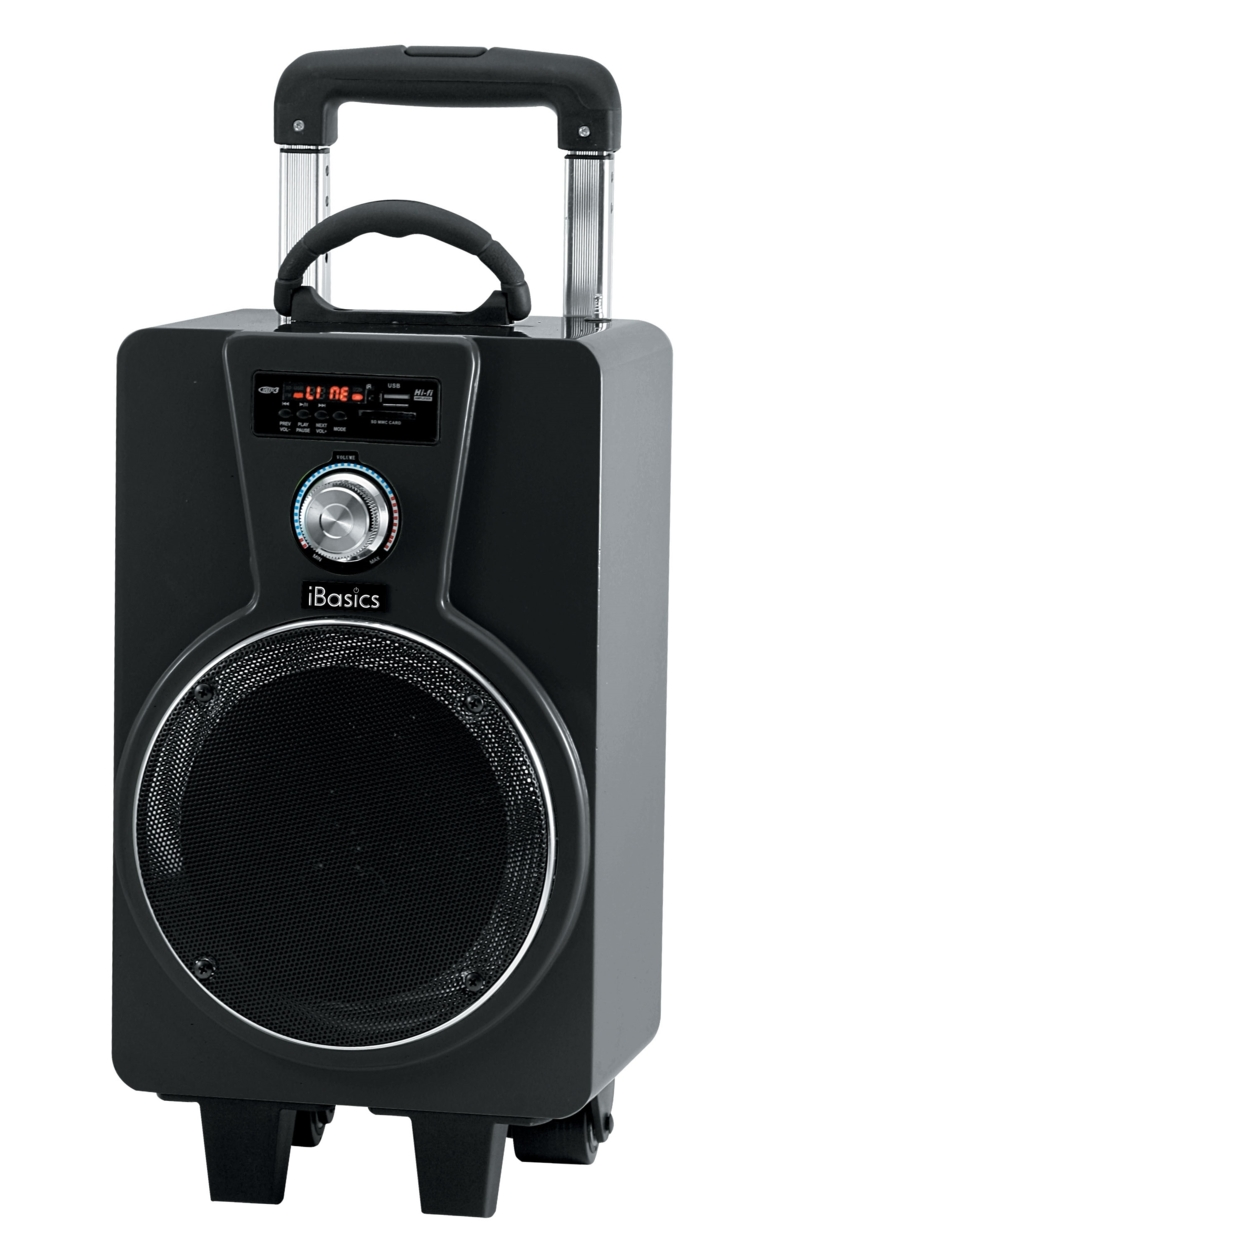 iBasics Portable Tailgate Party Speaker with Mic - Black 571916a1683d6f48368b4a3f